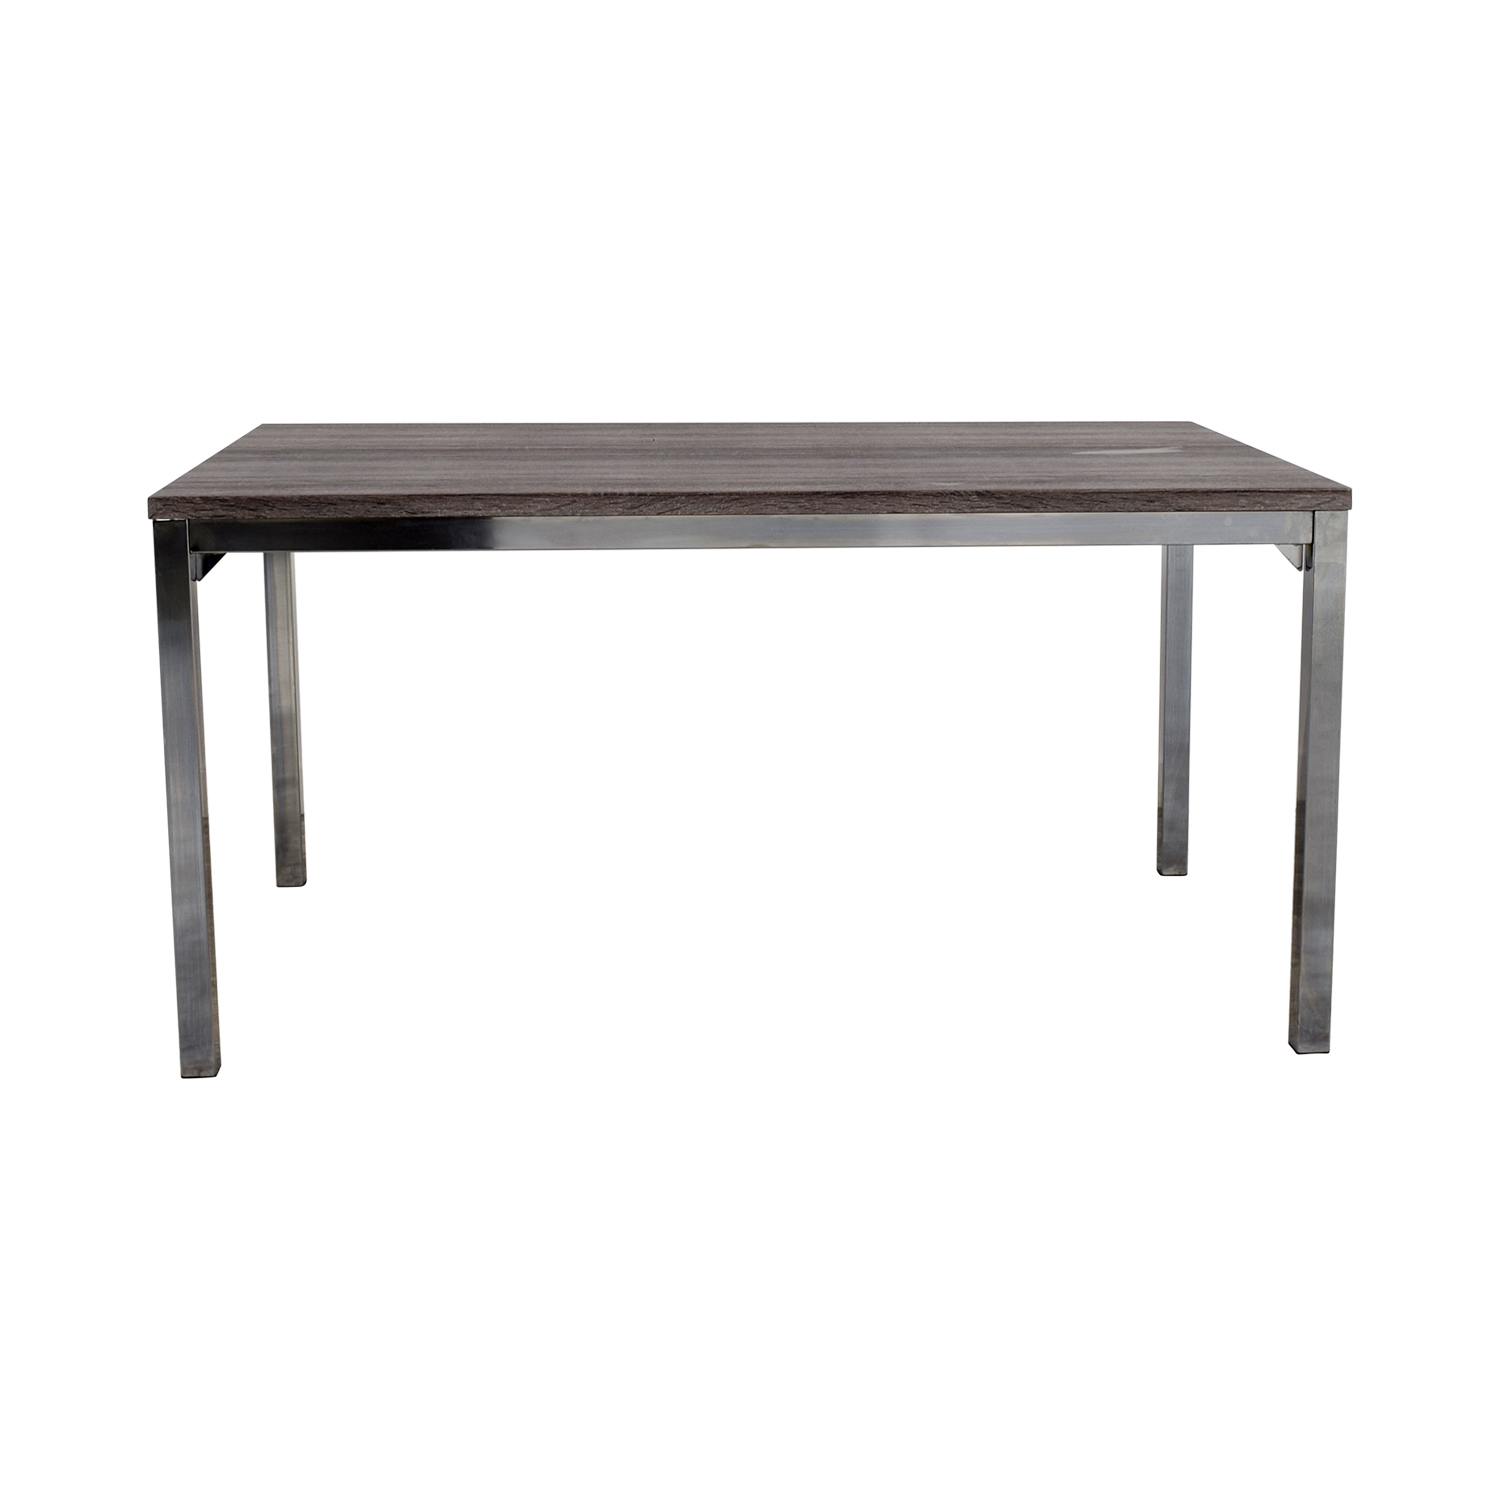 Wildon Home Wildon Home Rustic Wood Top and Chrome Dining Table Tables